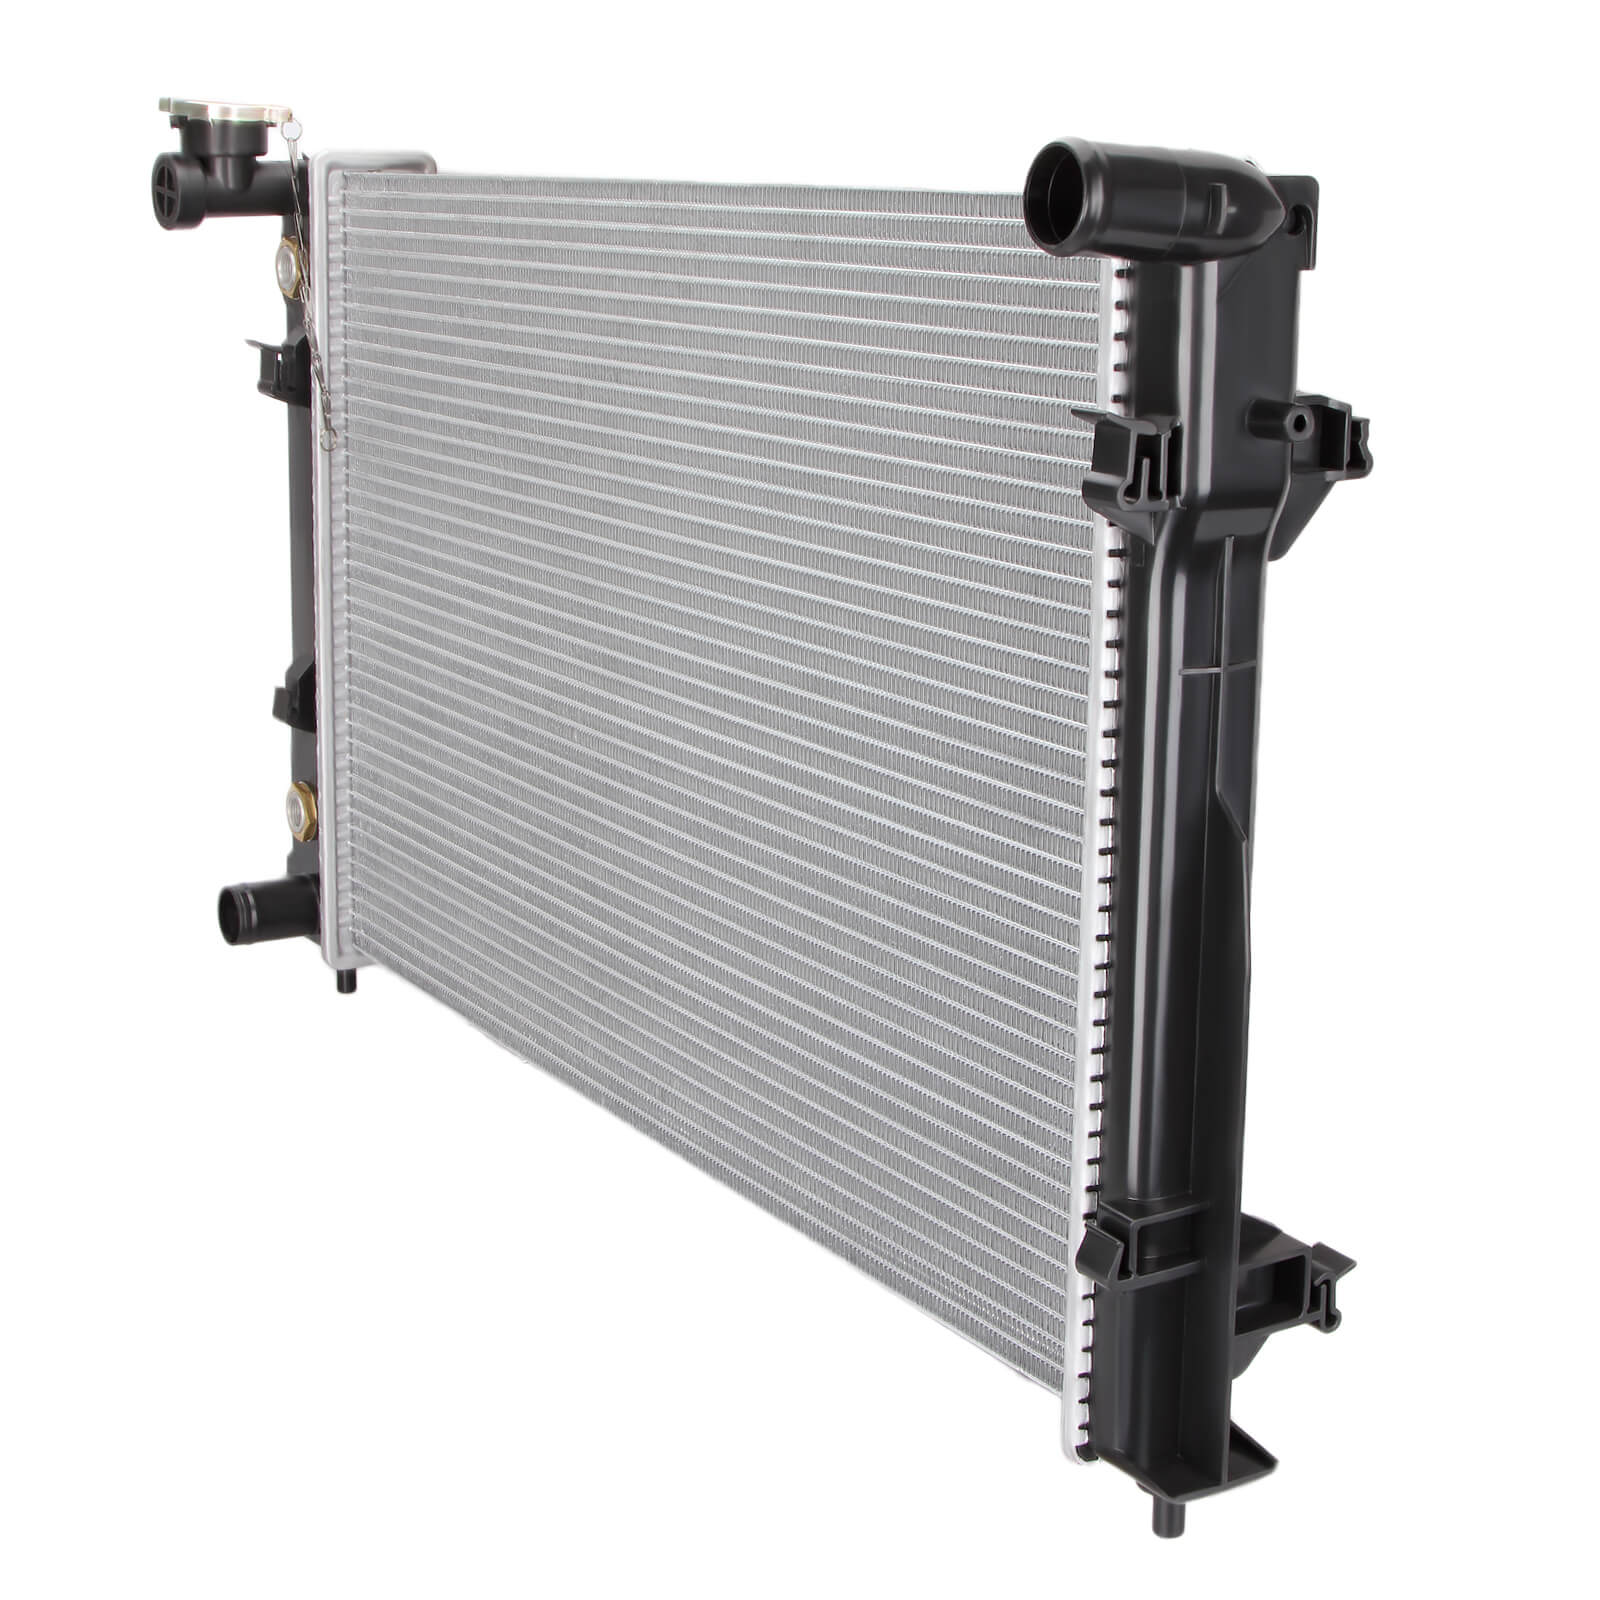 Dromedary-High Quality New 2688 Full Aluminum Radiator For Lexus Rx 330 33-202-v6-3